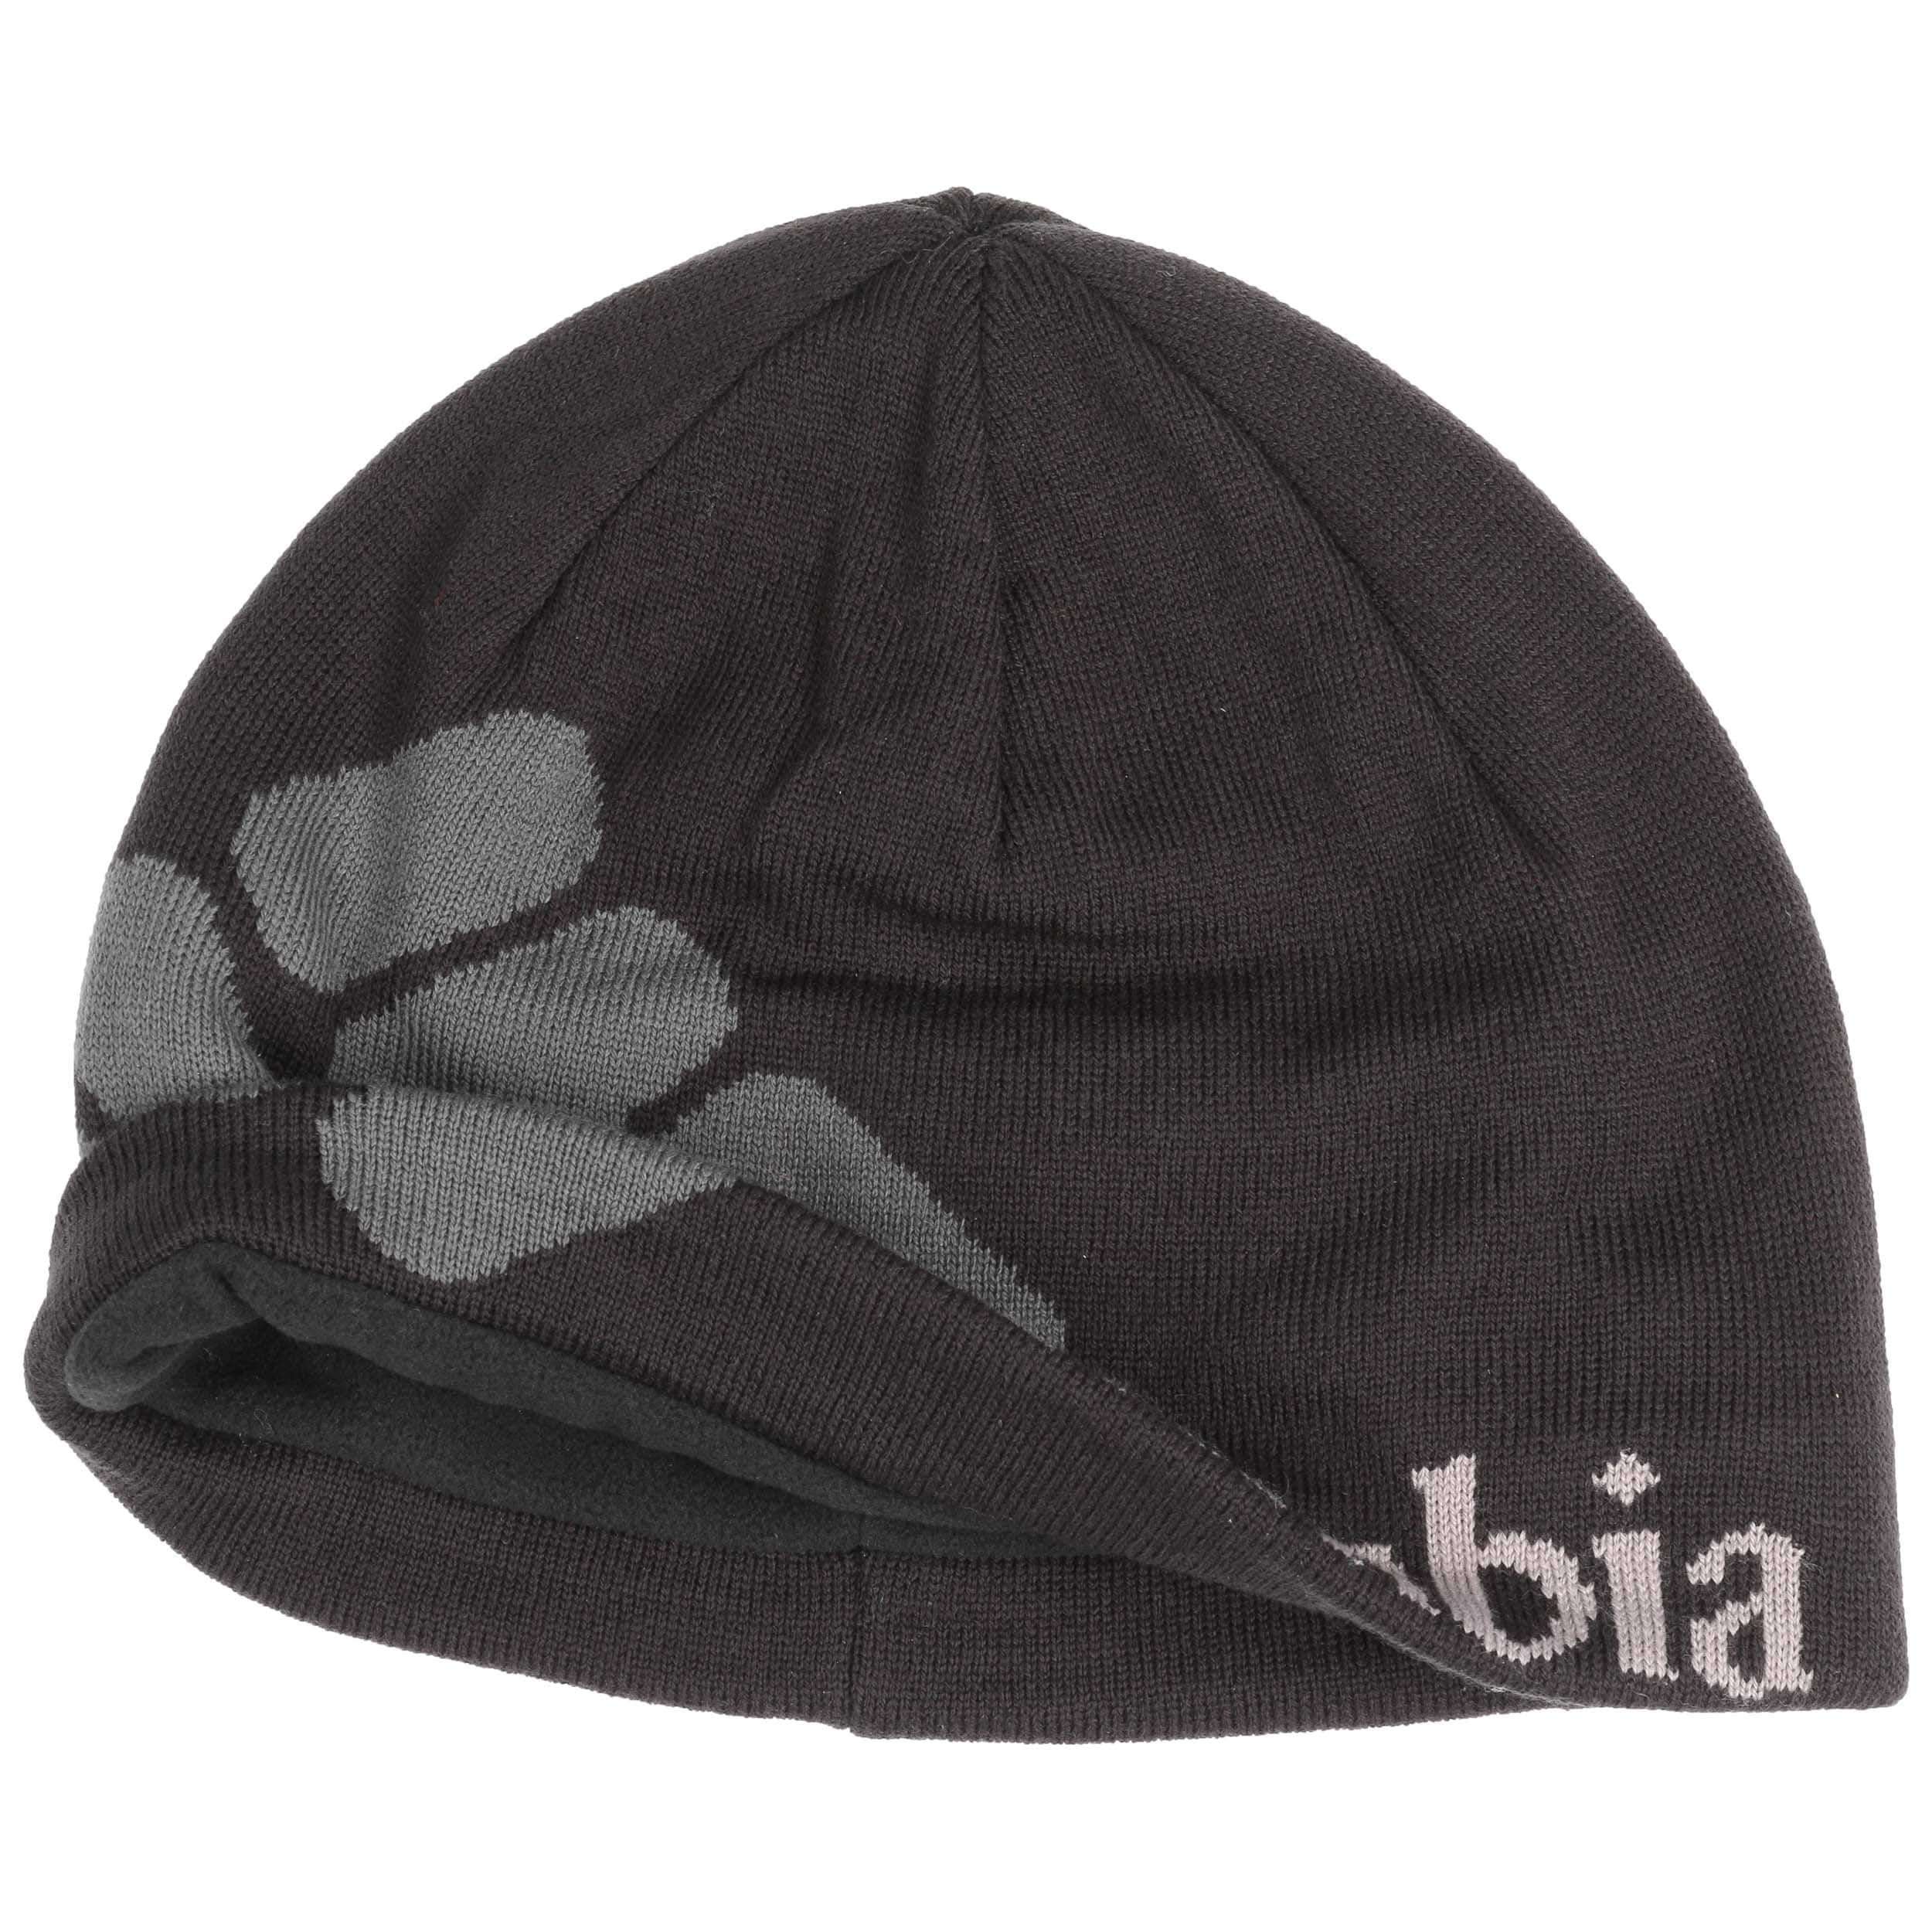 ... Basic Omni-Heat Beanie by Columbia - black 1 ... ef63e60b0e0